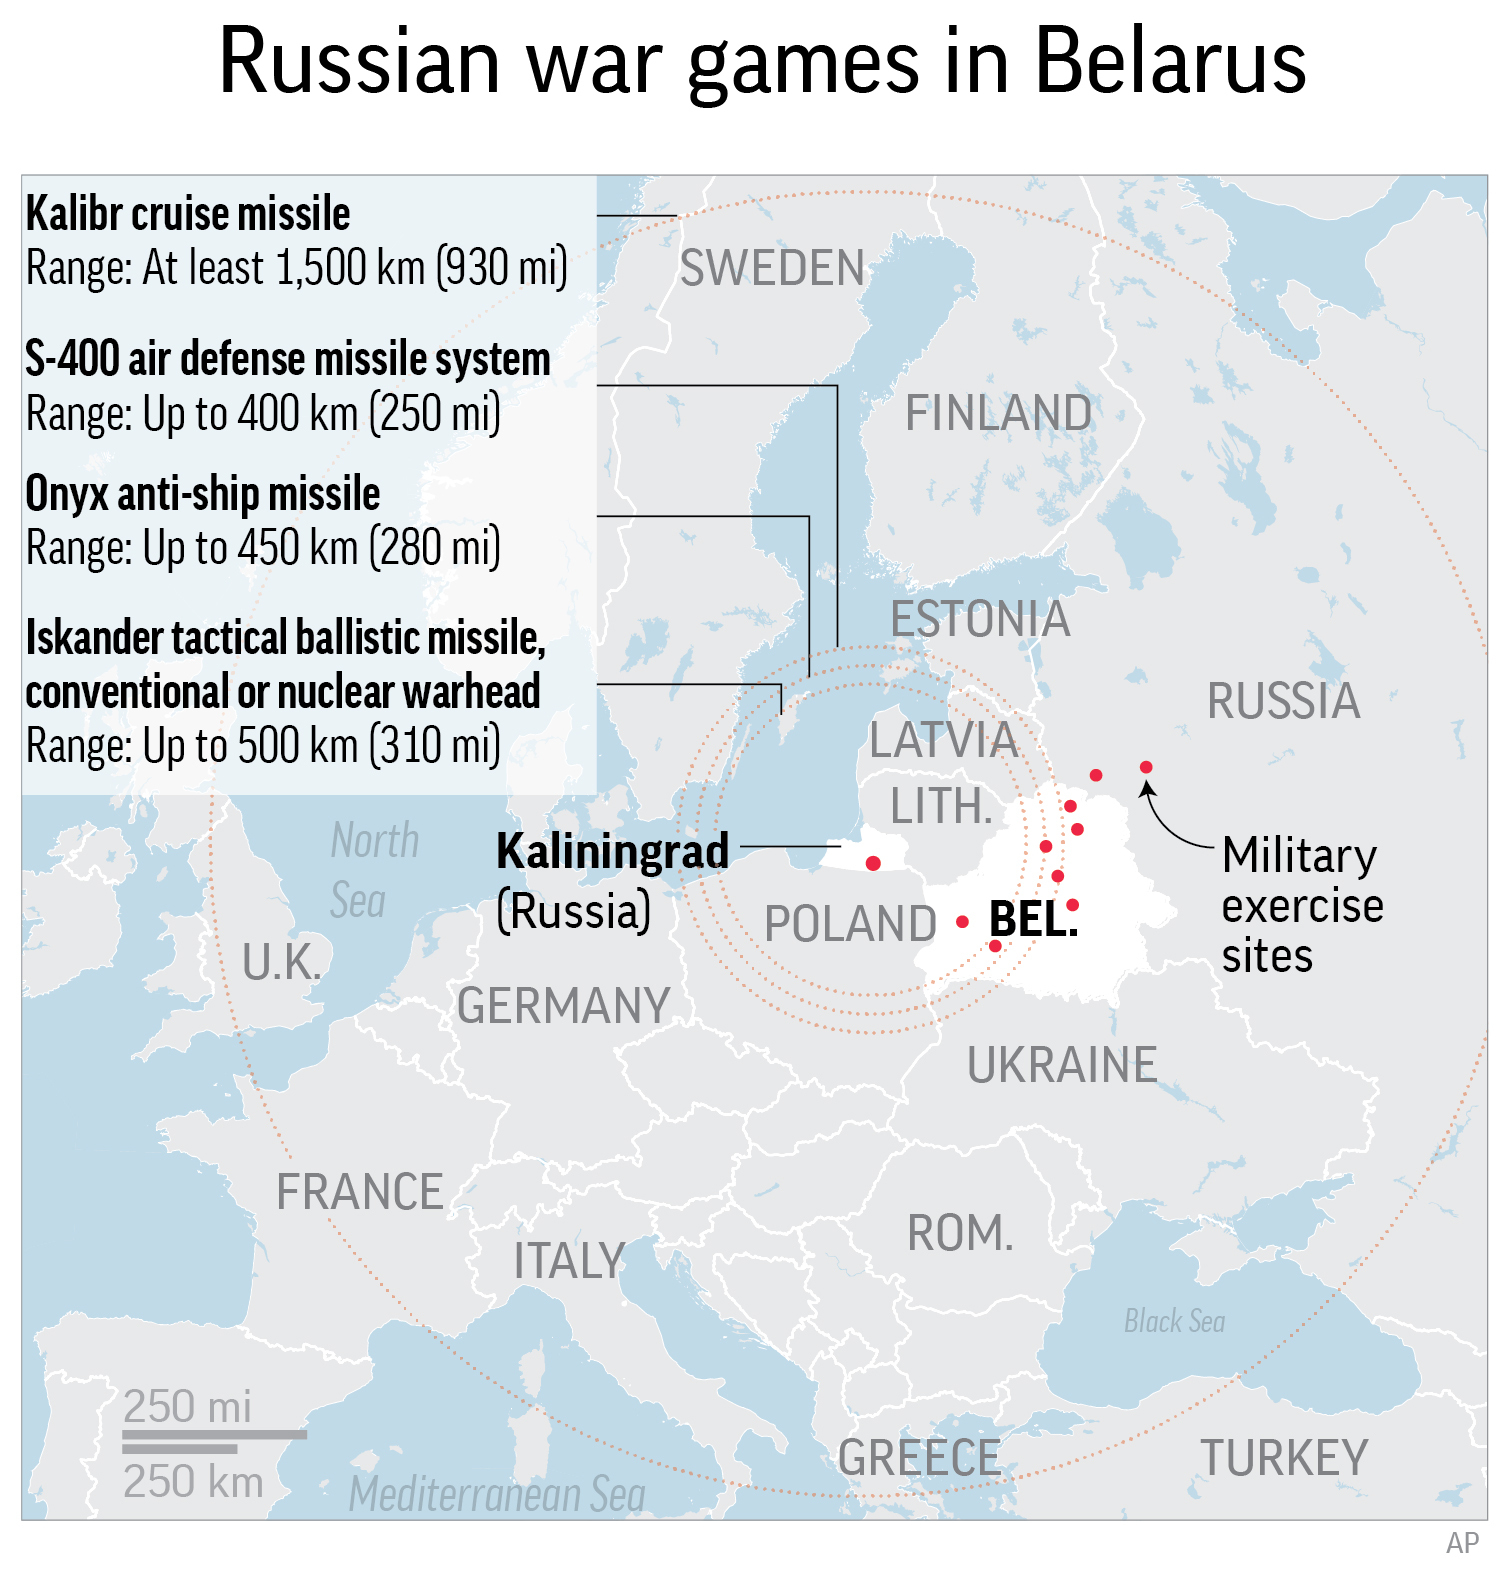 Russian and Belarusian war game sites and Russian missile defense system ranges from Kaliningrad.